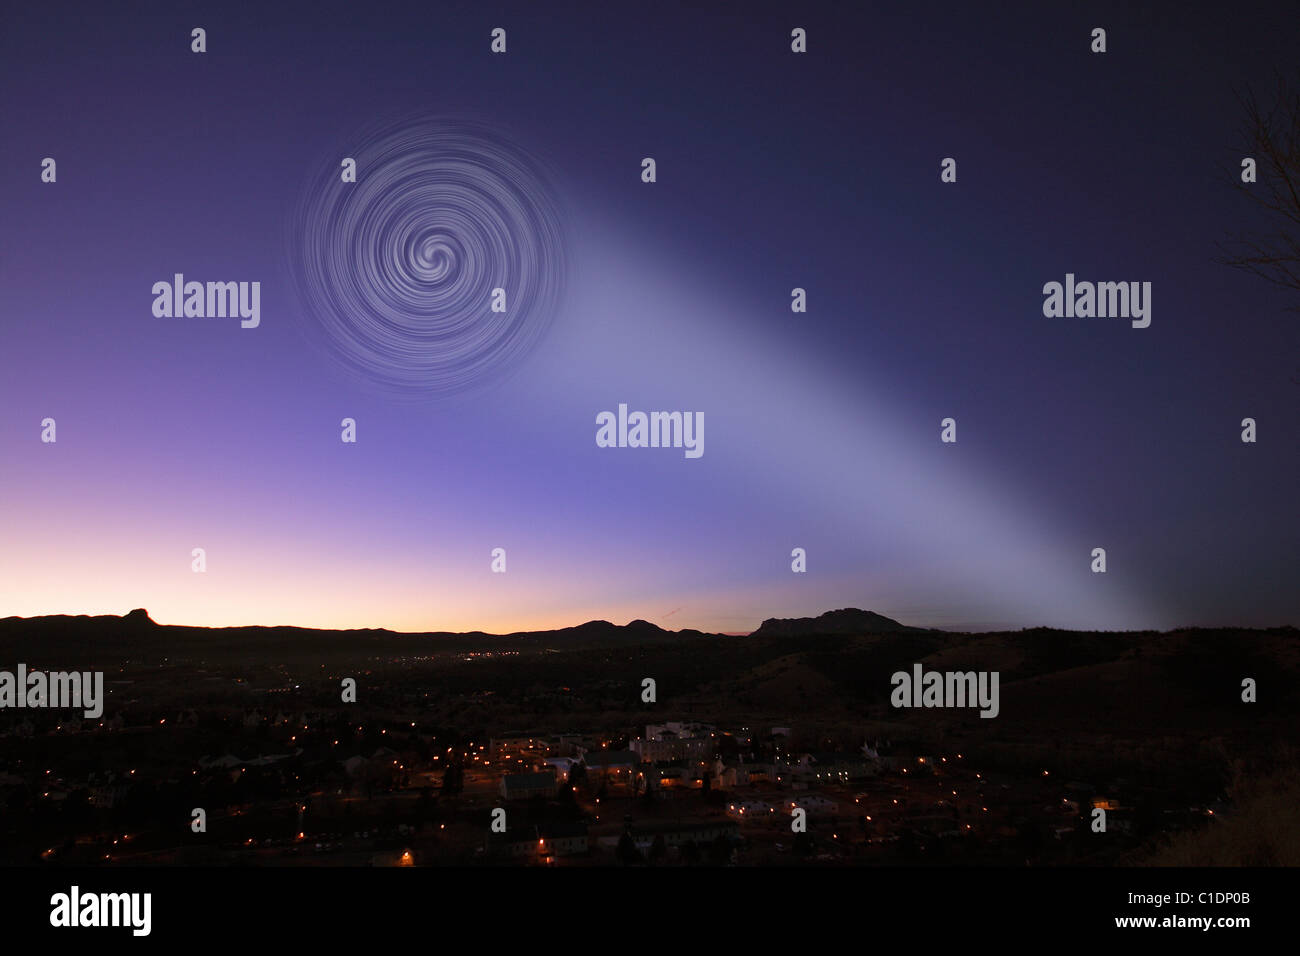 """Recreation of the """"Norway Spiral"""" UFO sighting - Stock Image"""